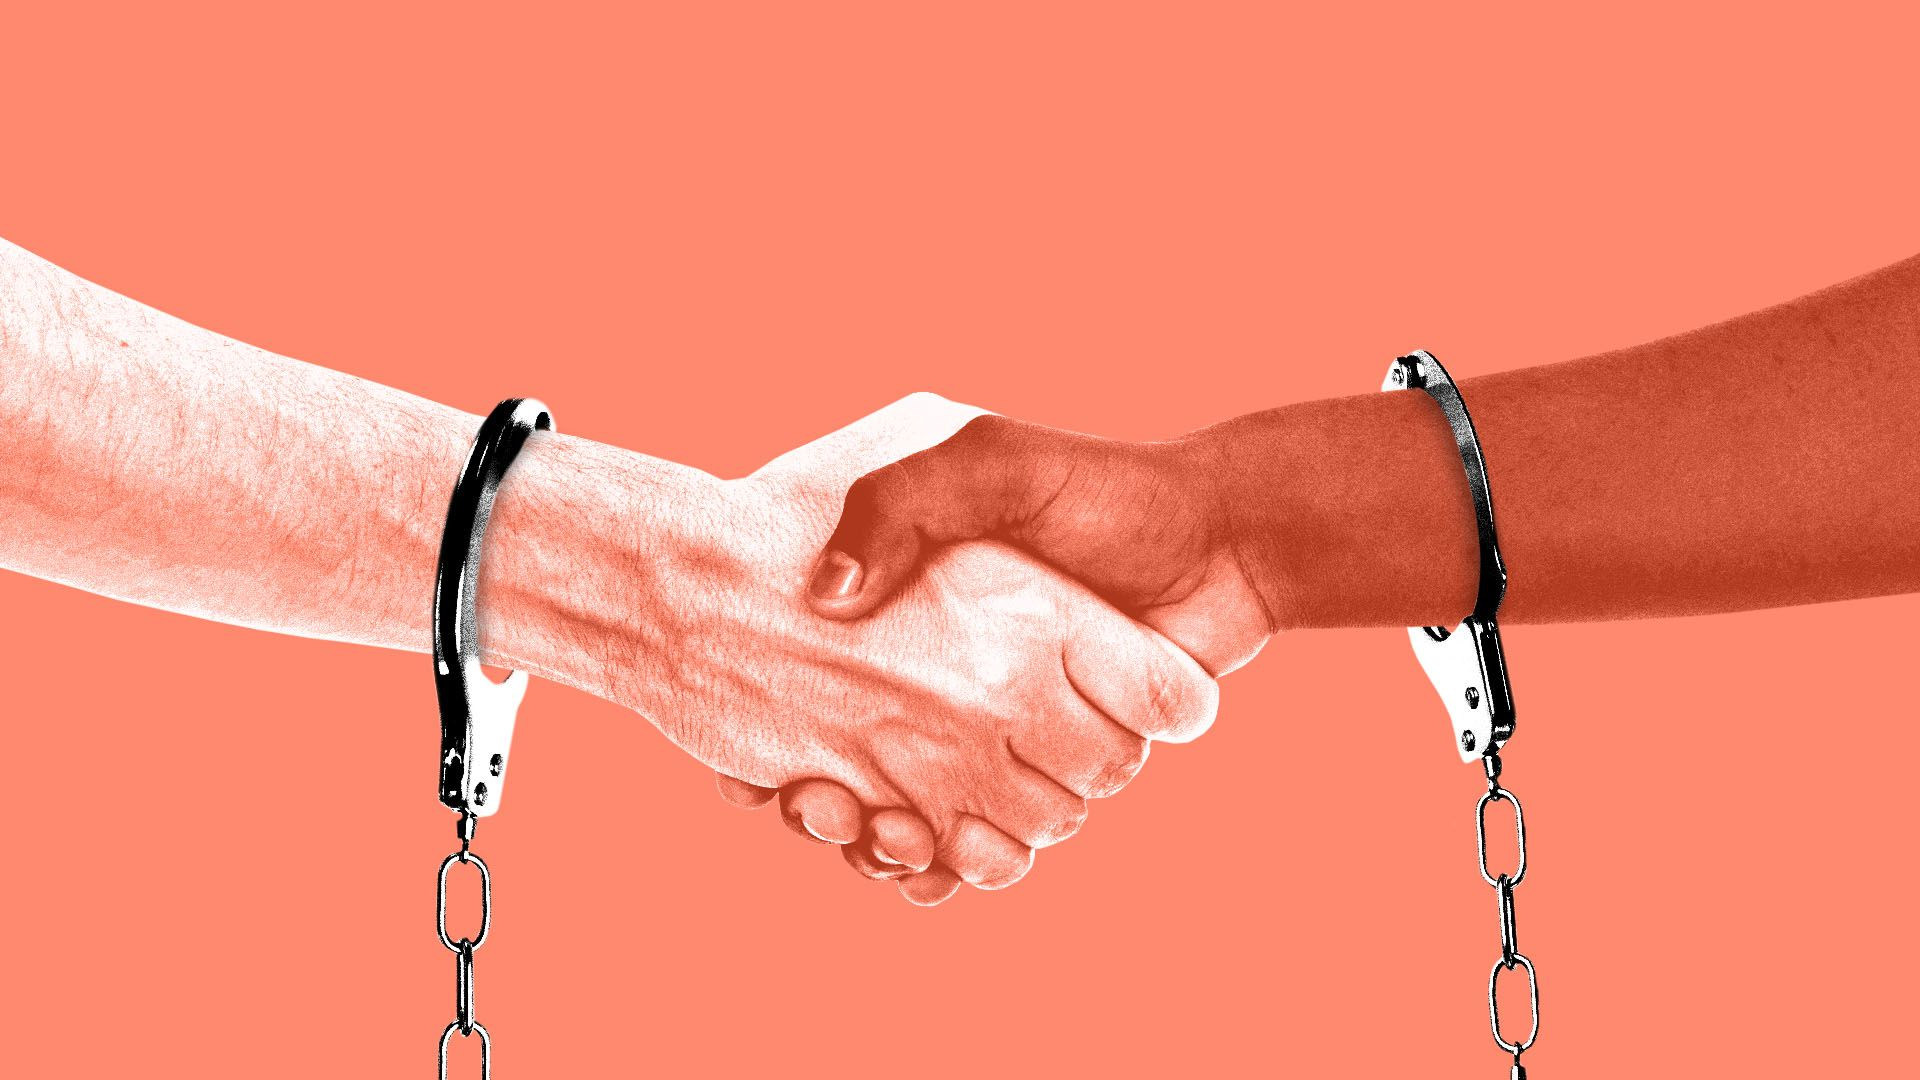 Illustration of two people shaking hands while wearing handcuffs